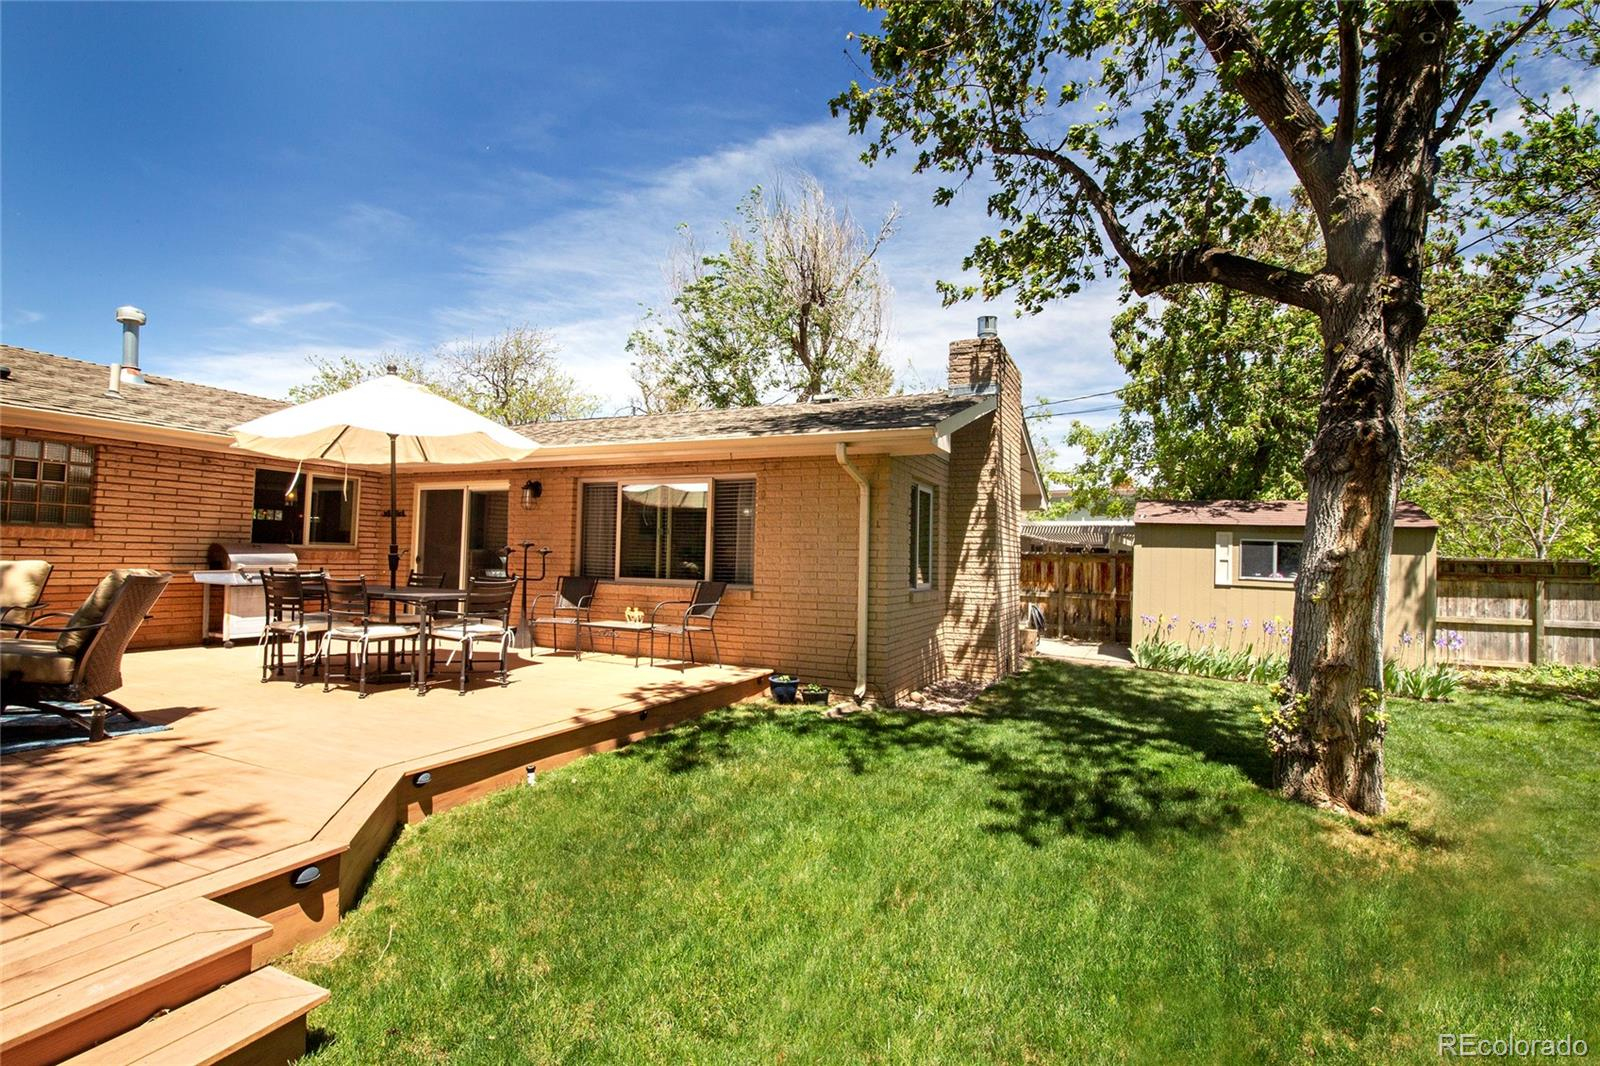 MLS# 3408747 - 2020 Balsam Drive, Boulder, CO 80304